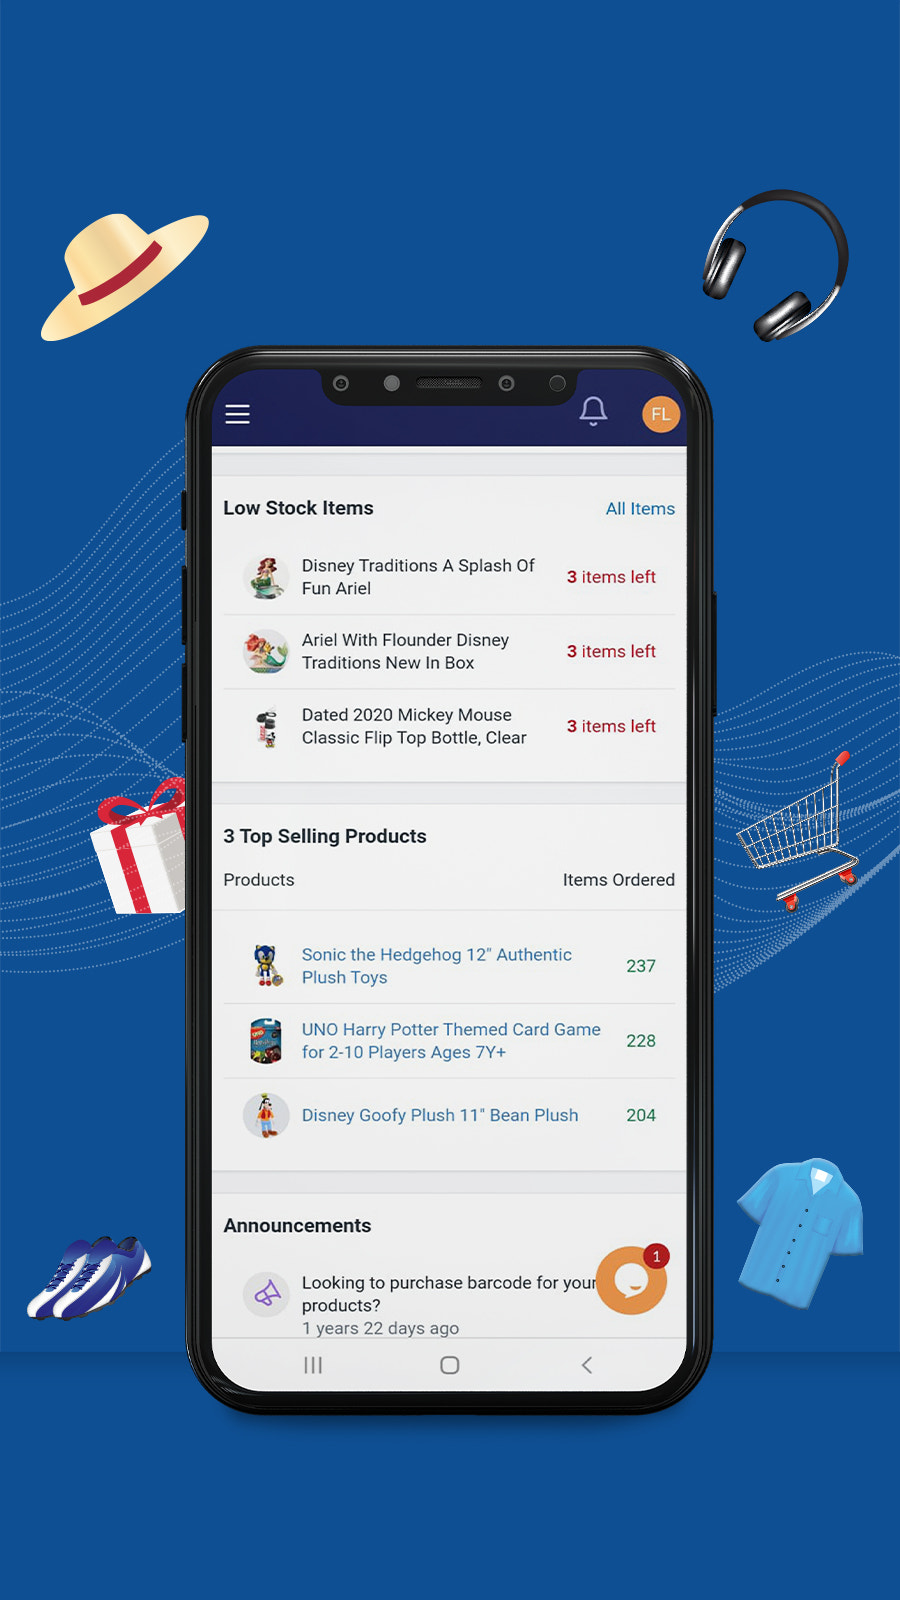 Dashboard of the app shows the To-Do list and important updates